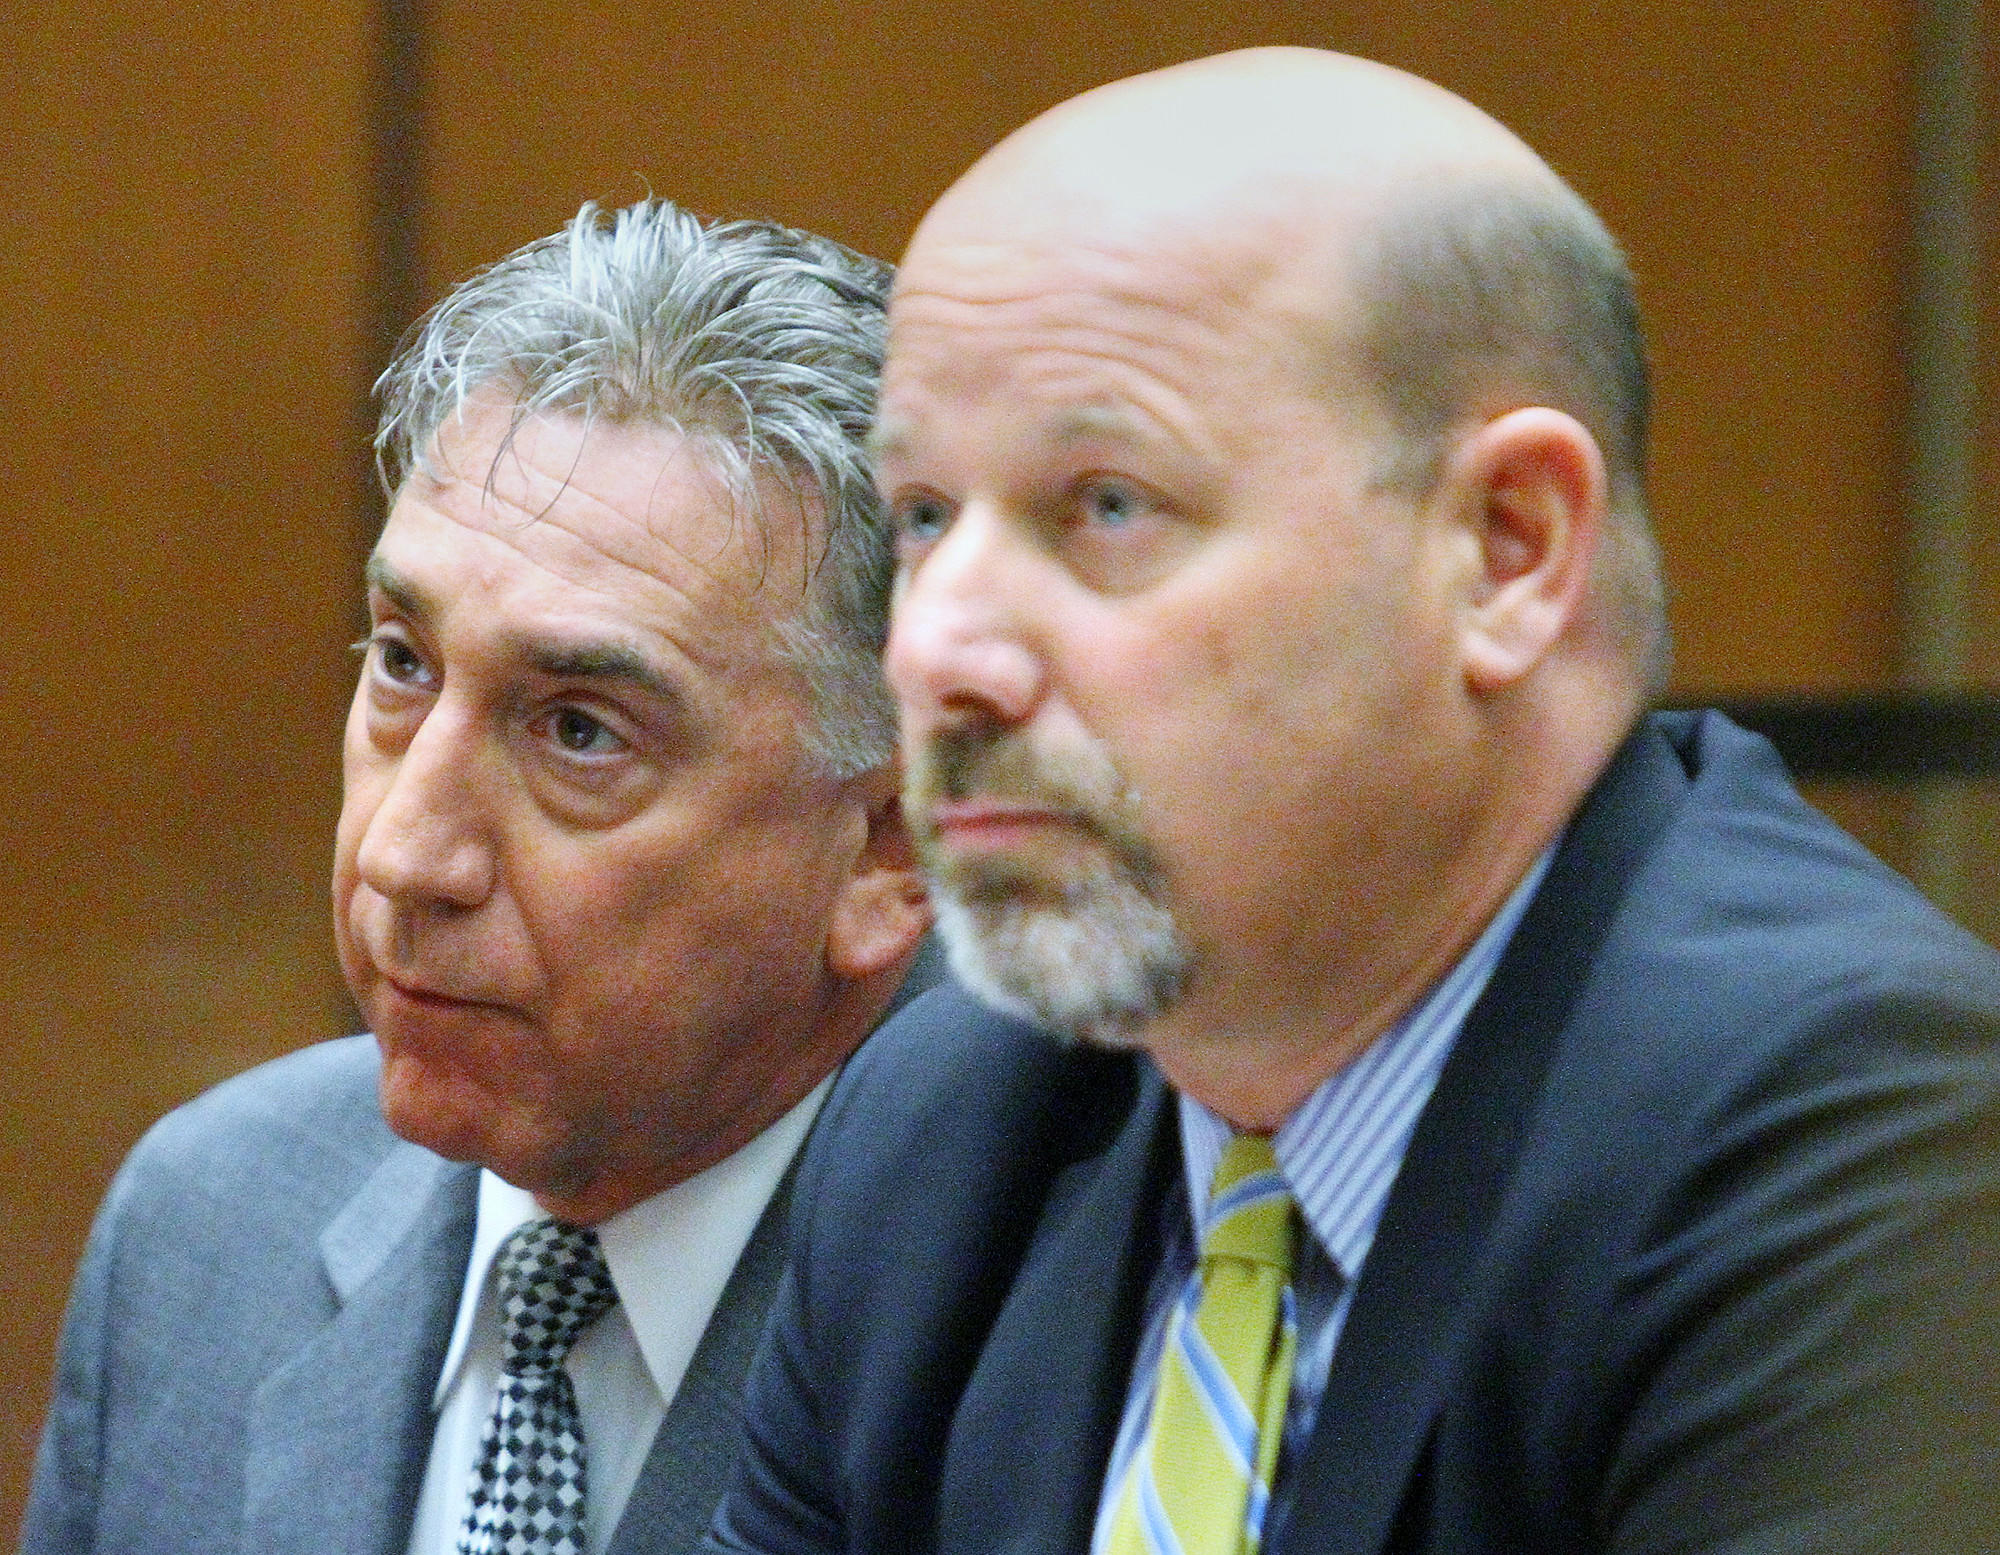 Former Glendale Mayor John Drayman, with his attorney Sean McDonald, at his sentencing at Superior Court in Los Angeles on Monday, April 7, 2014 for embezzling proceeds from the Montrose Farmer's Market, and filing false tax returns. His sentence is 365 days in county jail, with 4 days credit for time served, and to pay restitution and all court fees.